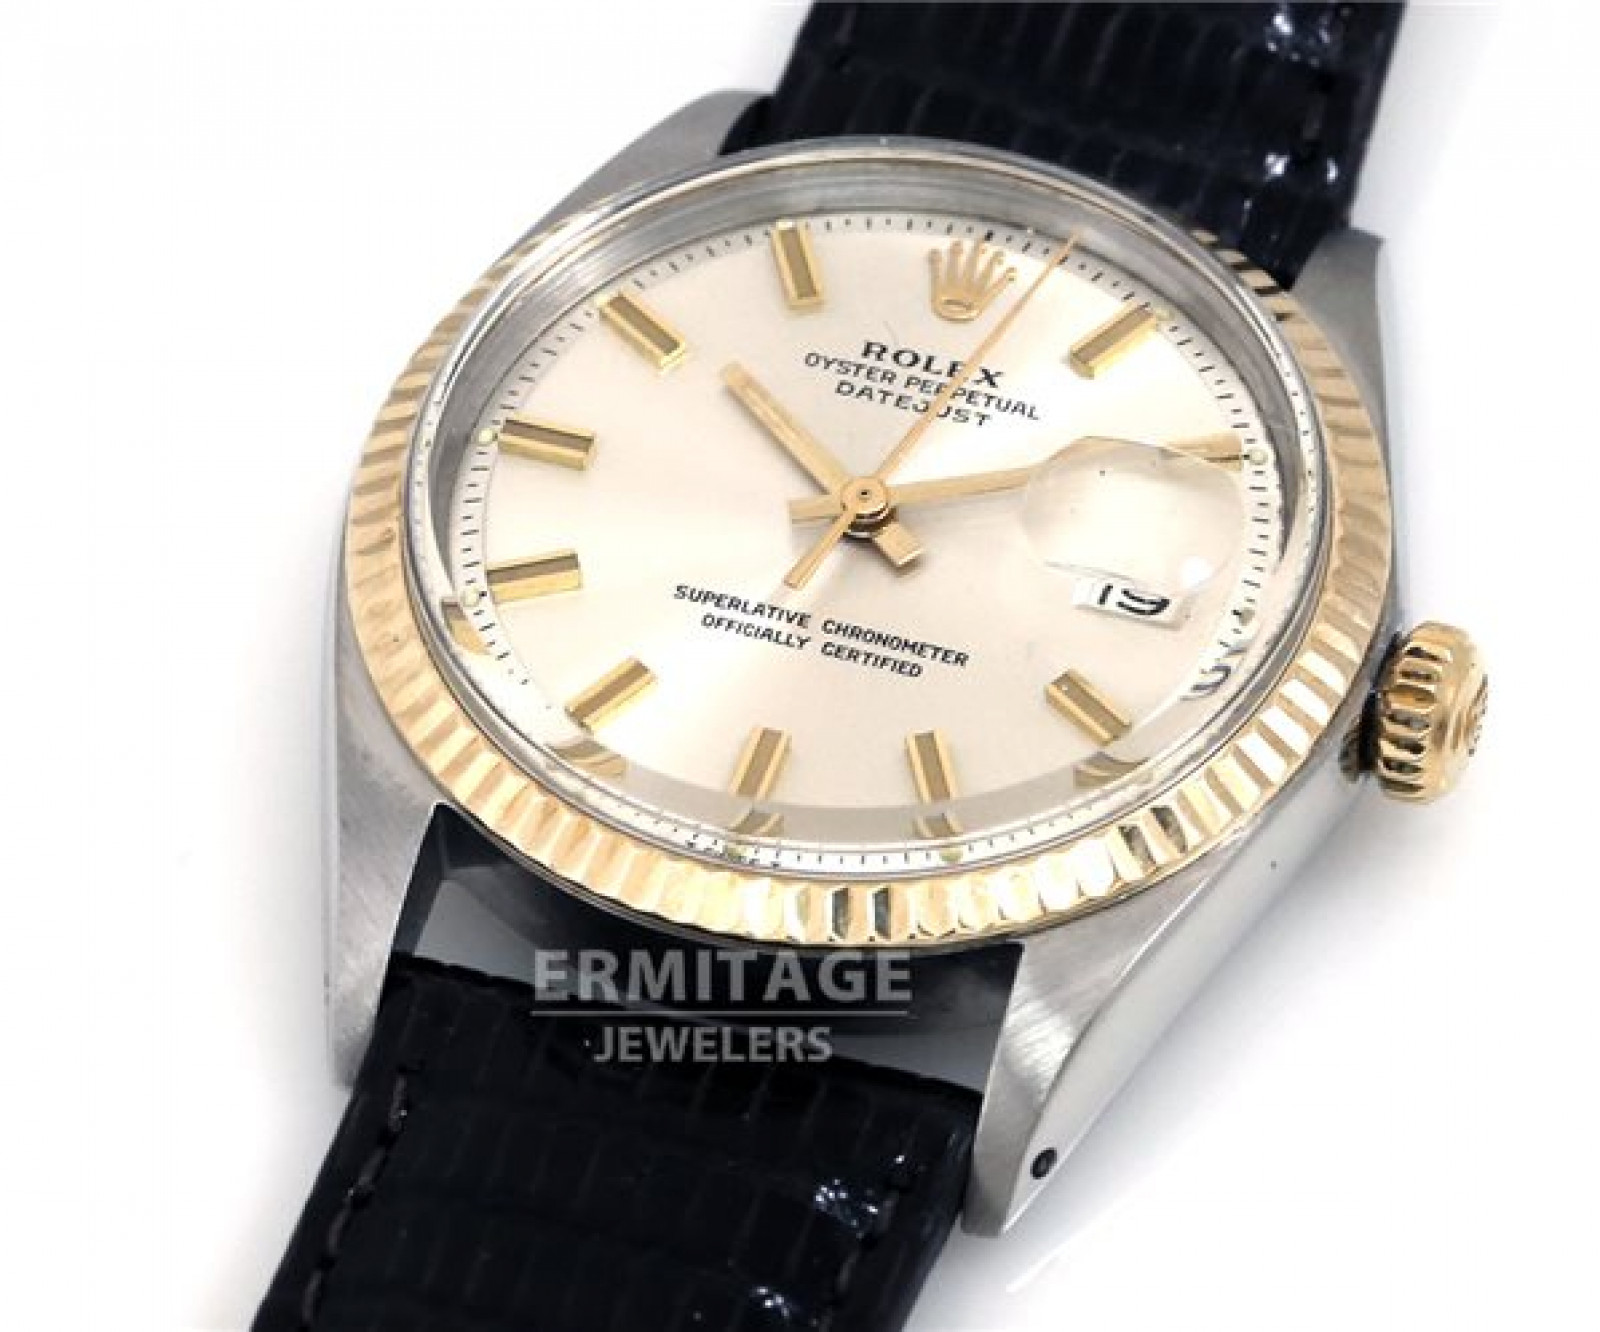 Vintage Rare Rolex Datejust 1601 Steel with Leather Strap